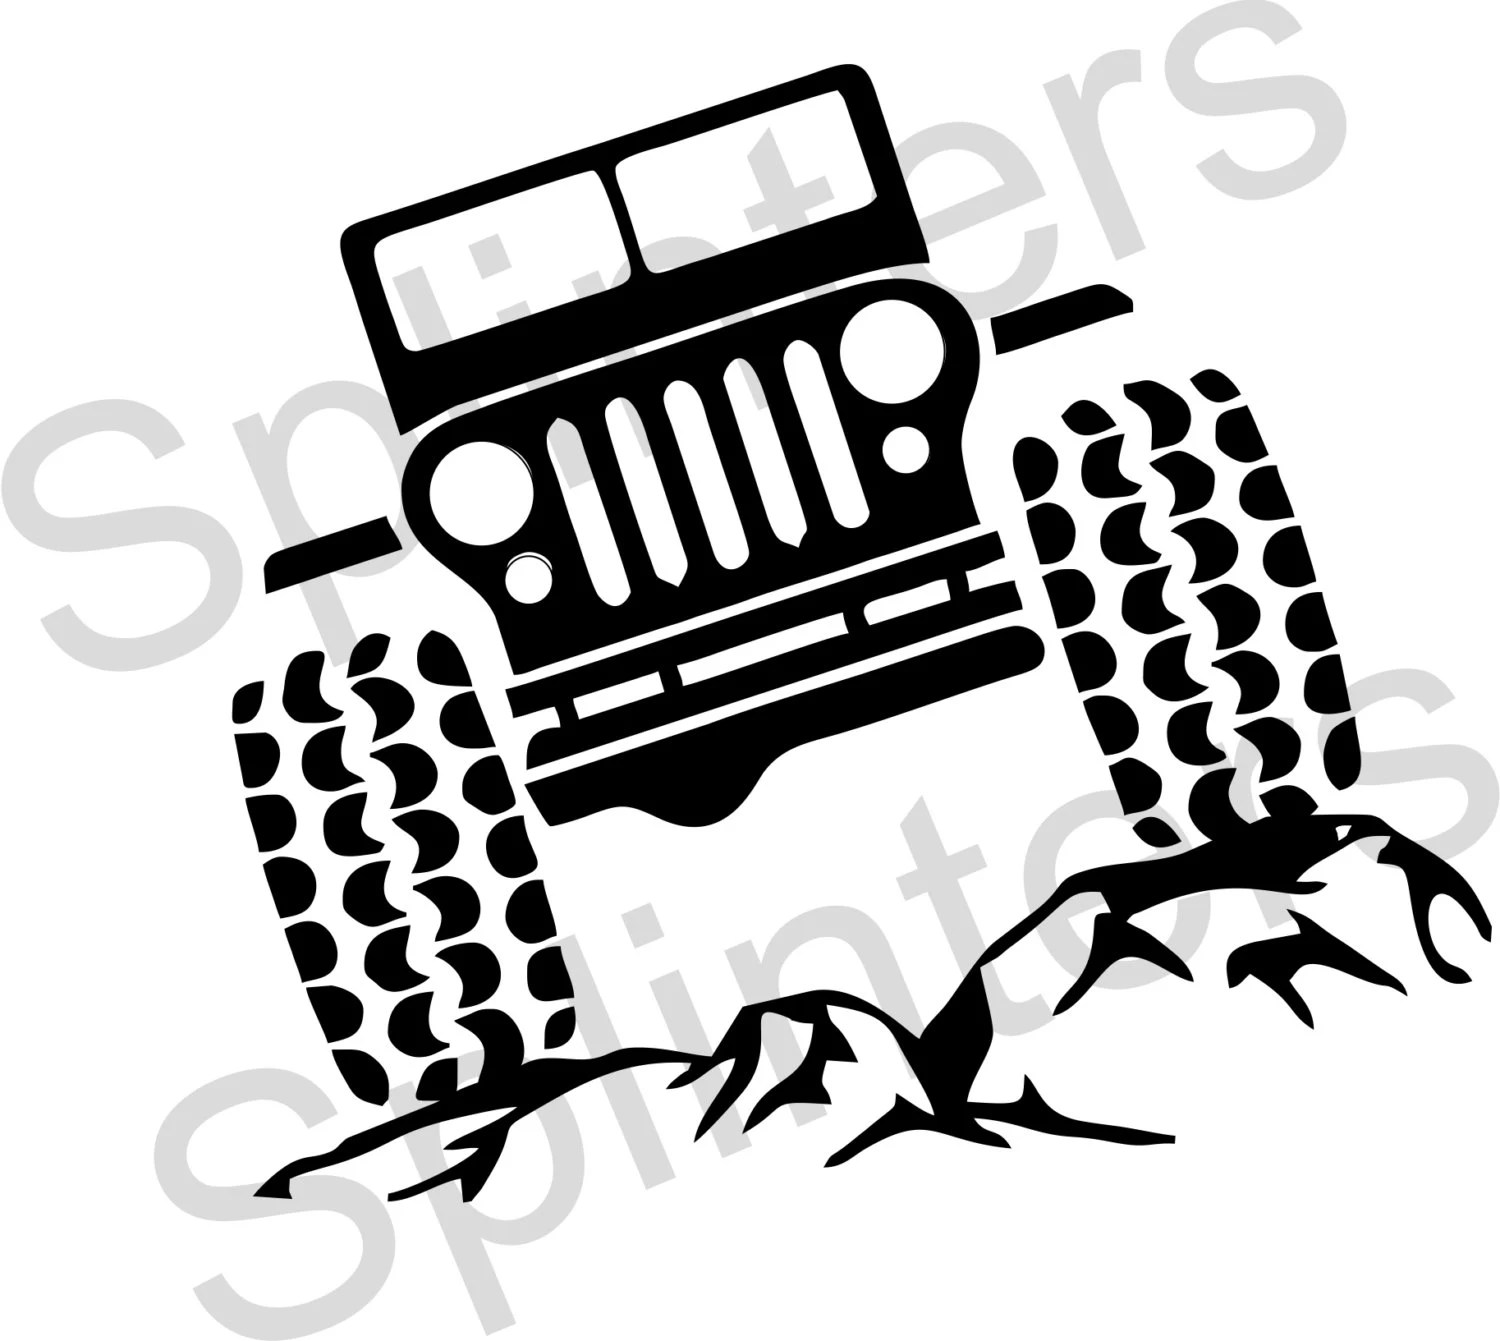 Jeep On The Rocks Svg File From Splinterscustomwood On Etsy Studio